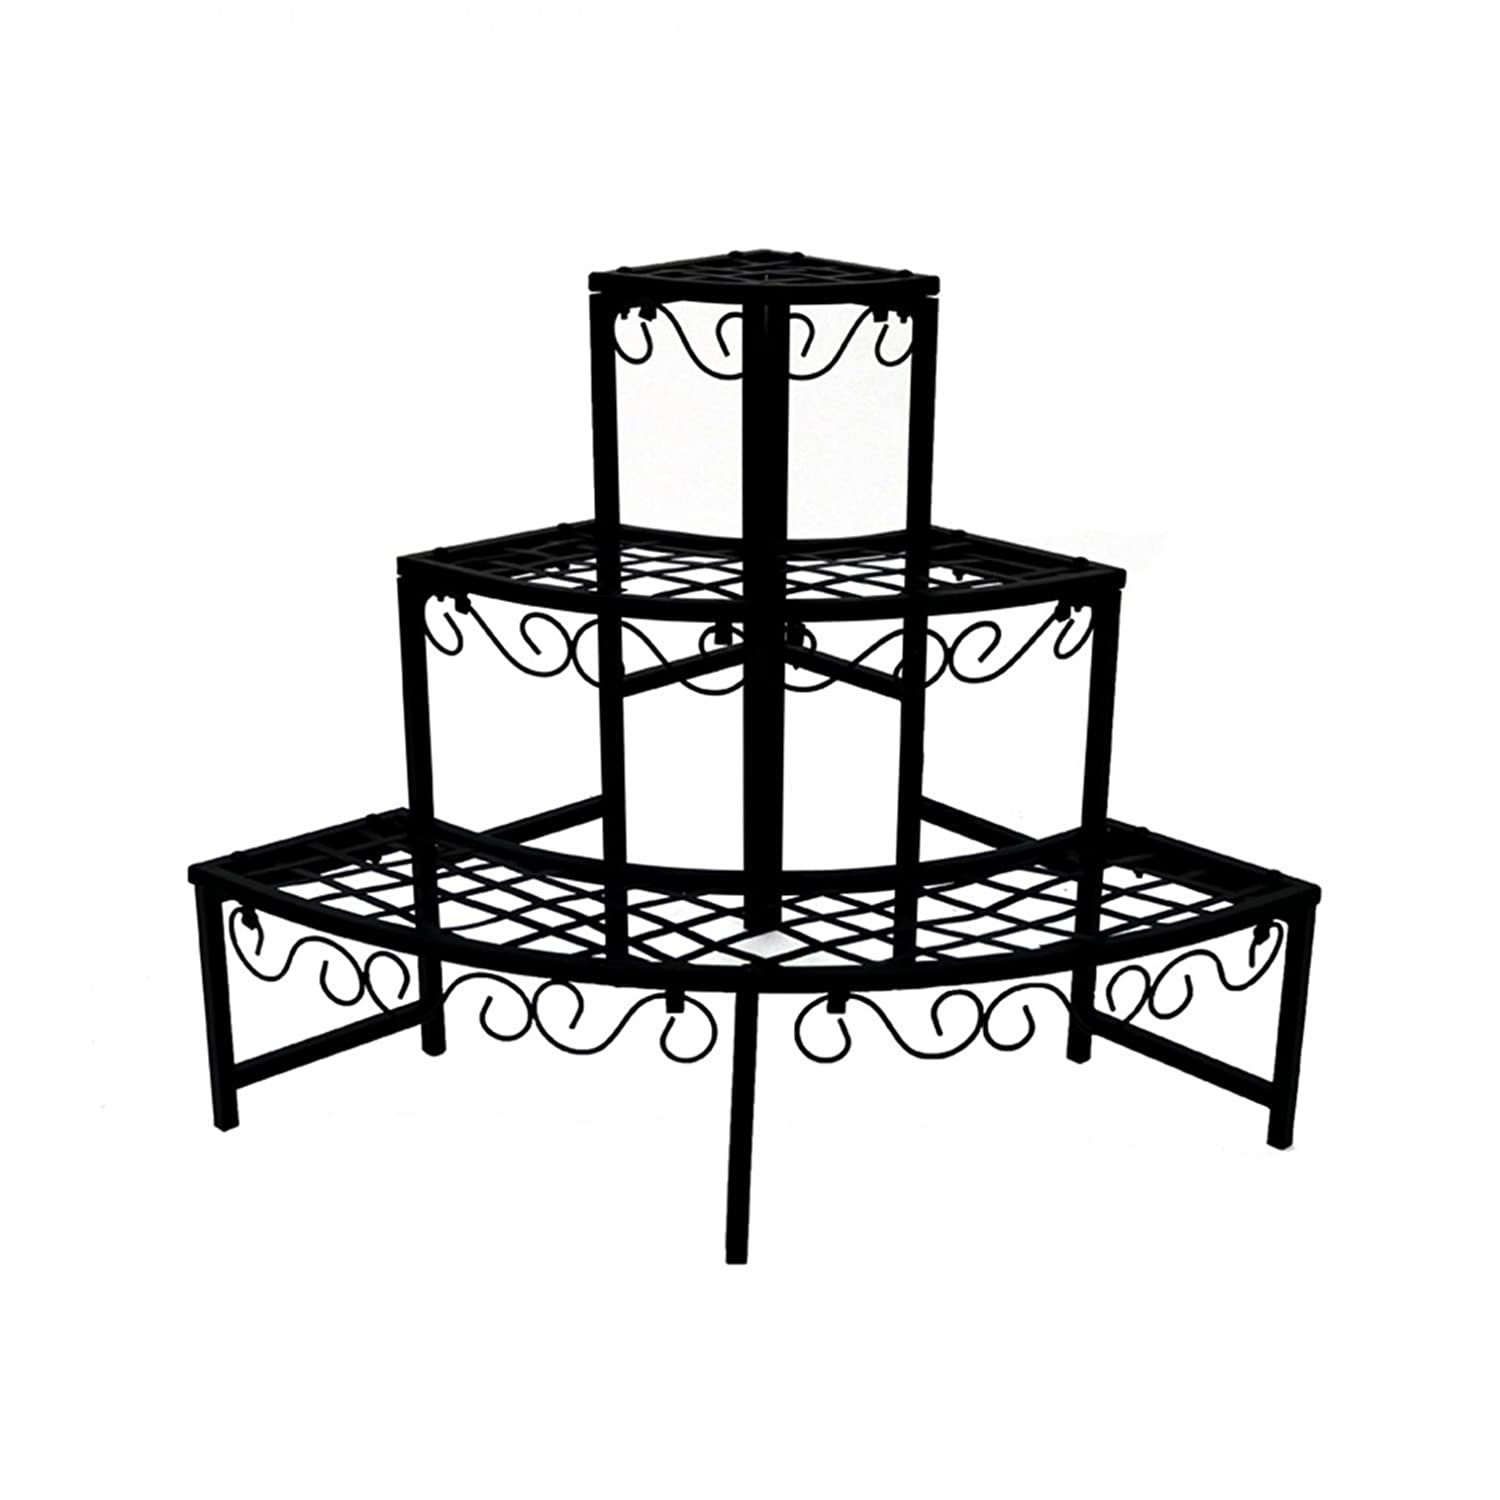 Oypla 3 Tier Corner Metal Garden Flower Staging Plant Stand Display Shelf 3884A2P